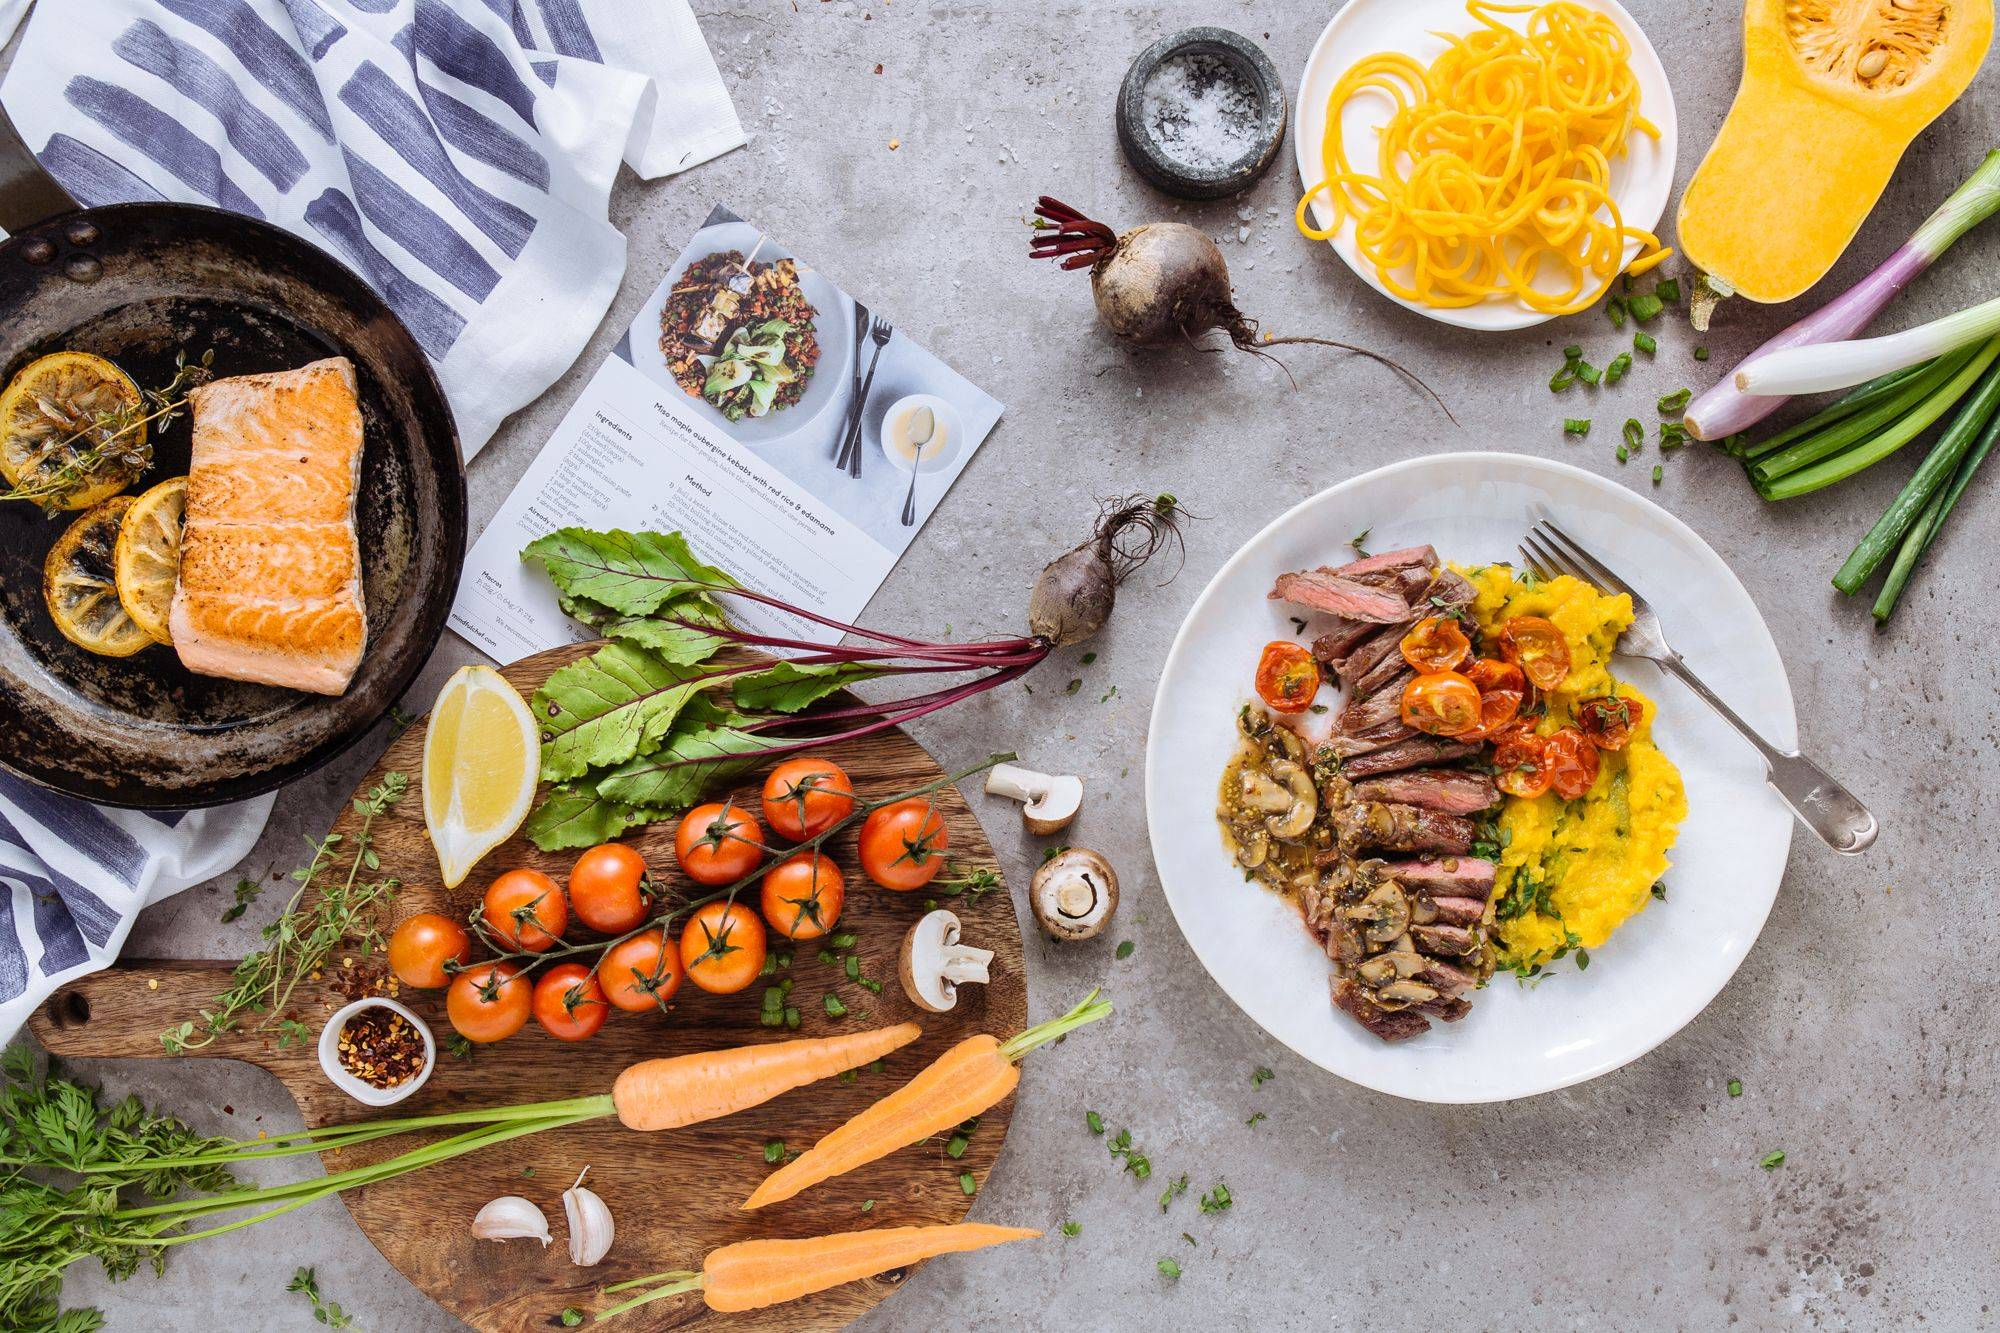 Best diet meals delivery top 10 reviewed glamour uk forumfinder Gallery